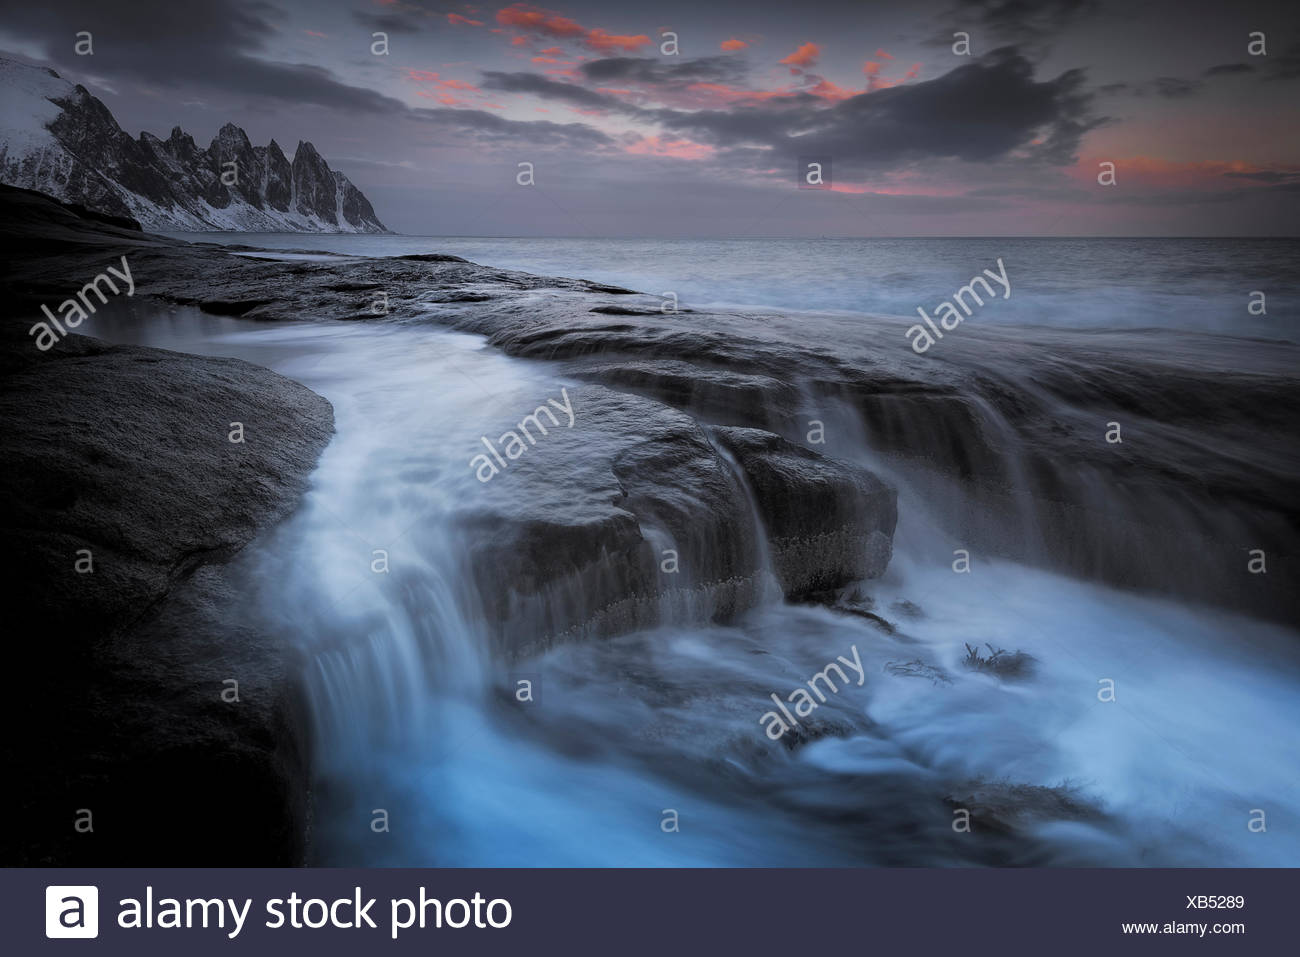 Long exposure of tidal water flowing off rocks, with the Okshornan Mountains in the background, Isle of Senja, Troms, Norway, Fe - Stock Image